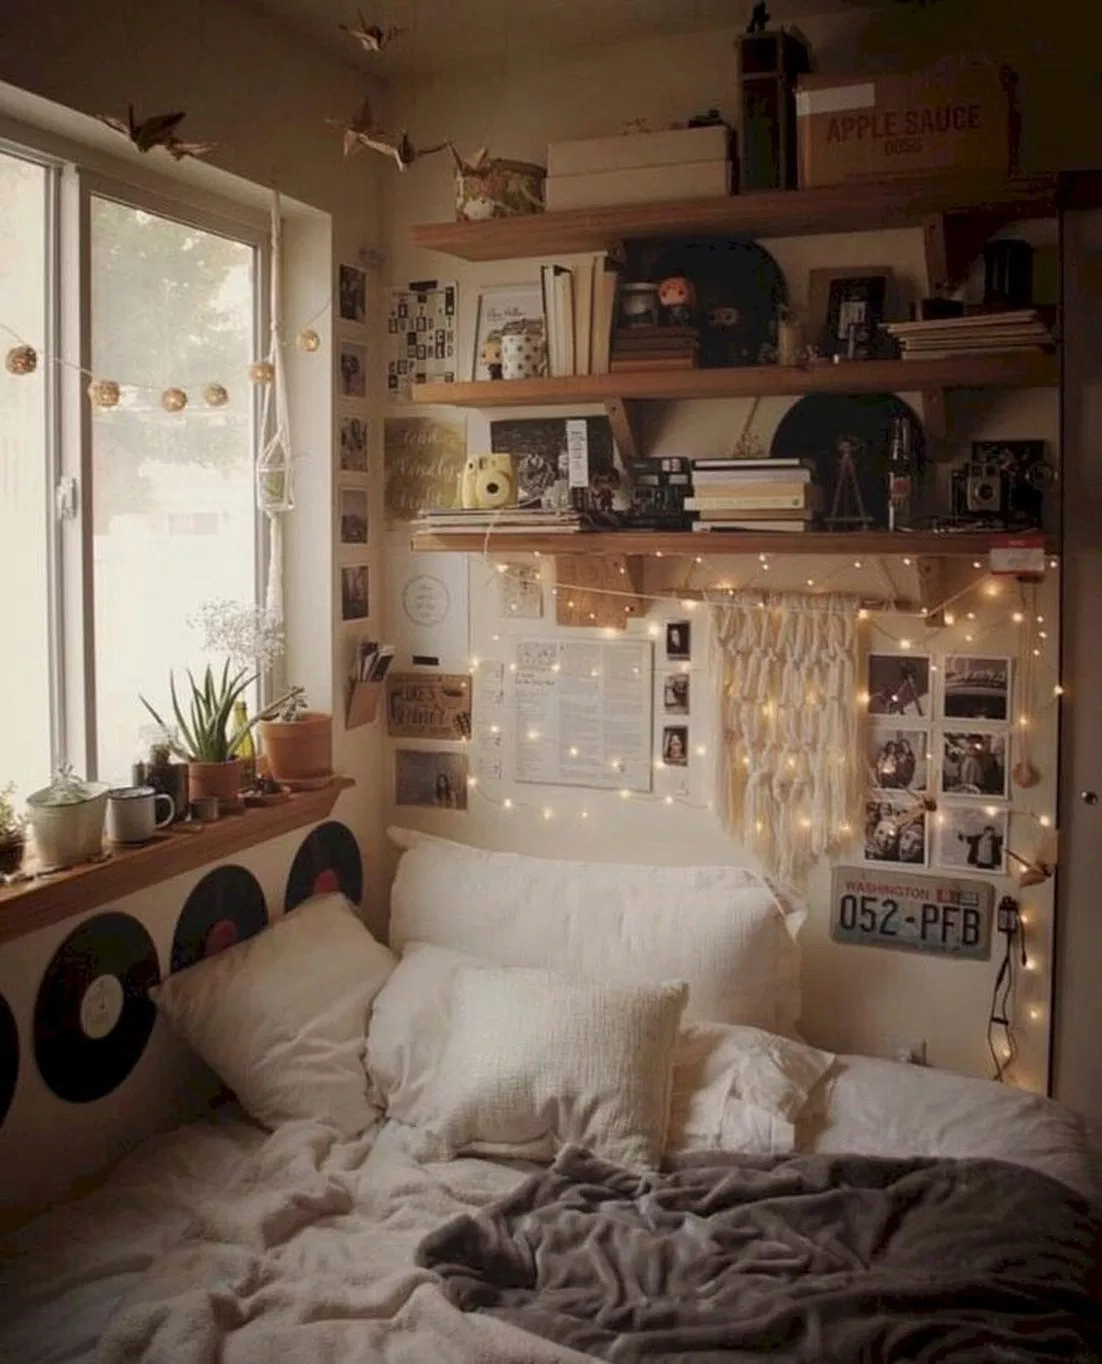 ✔ 30+ rustic bedroom ideas for creative people 57 images